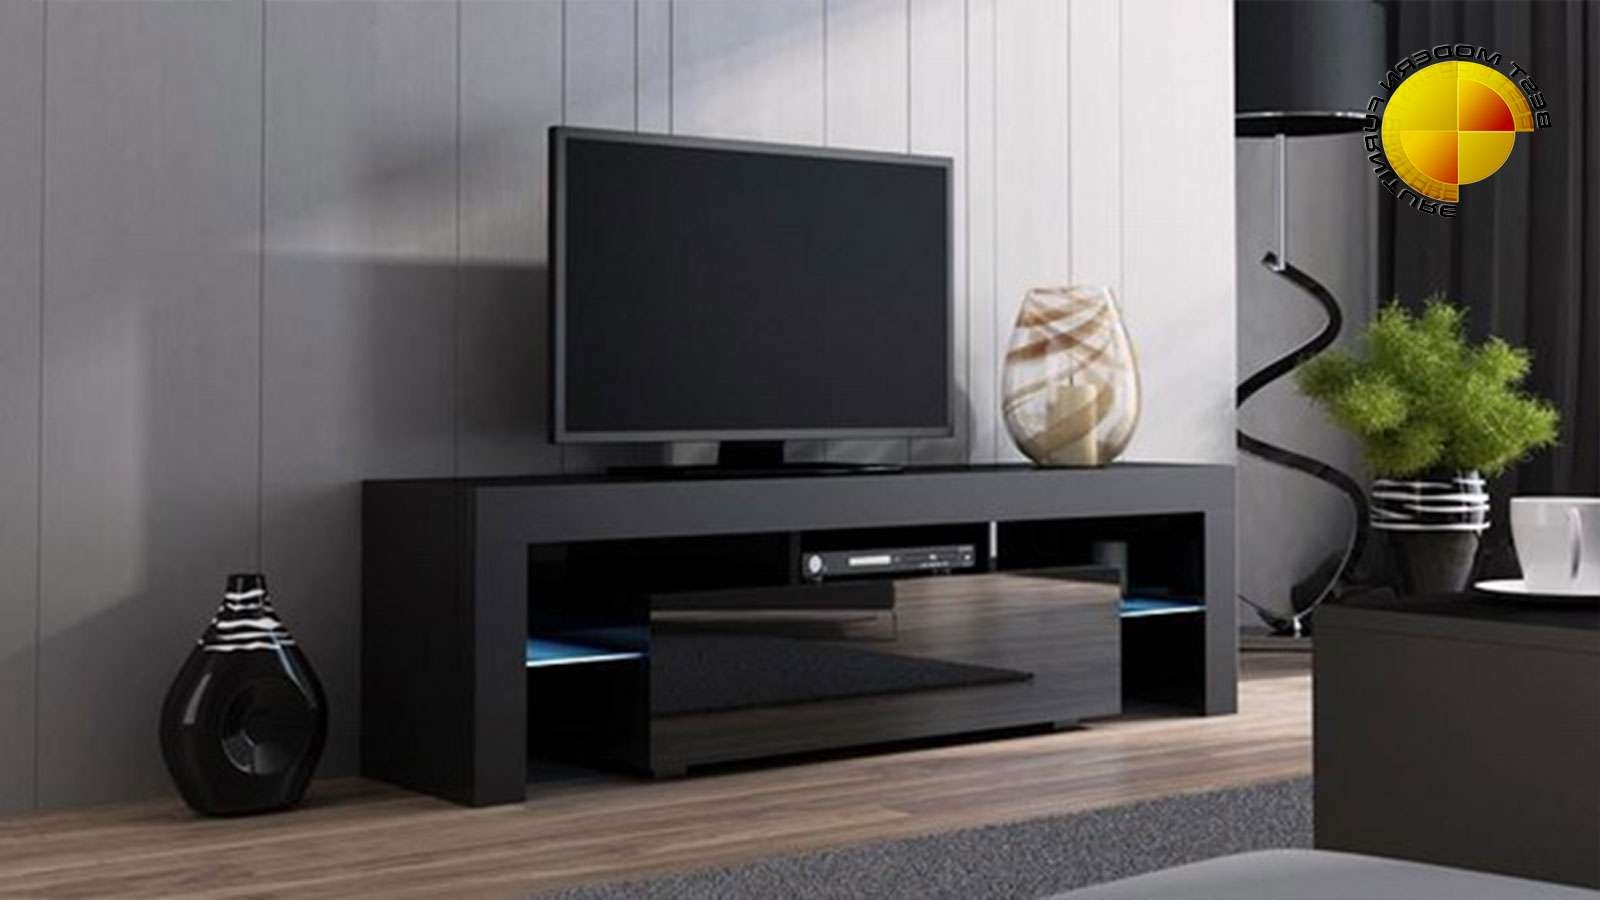 Modern Tv Stand 160cm High Gloss Cabinet Rgb Led Lights Black Unit For Modern Tv Cabinets (View 6 of 20)